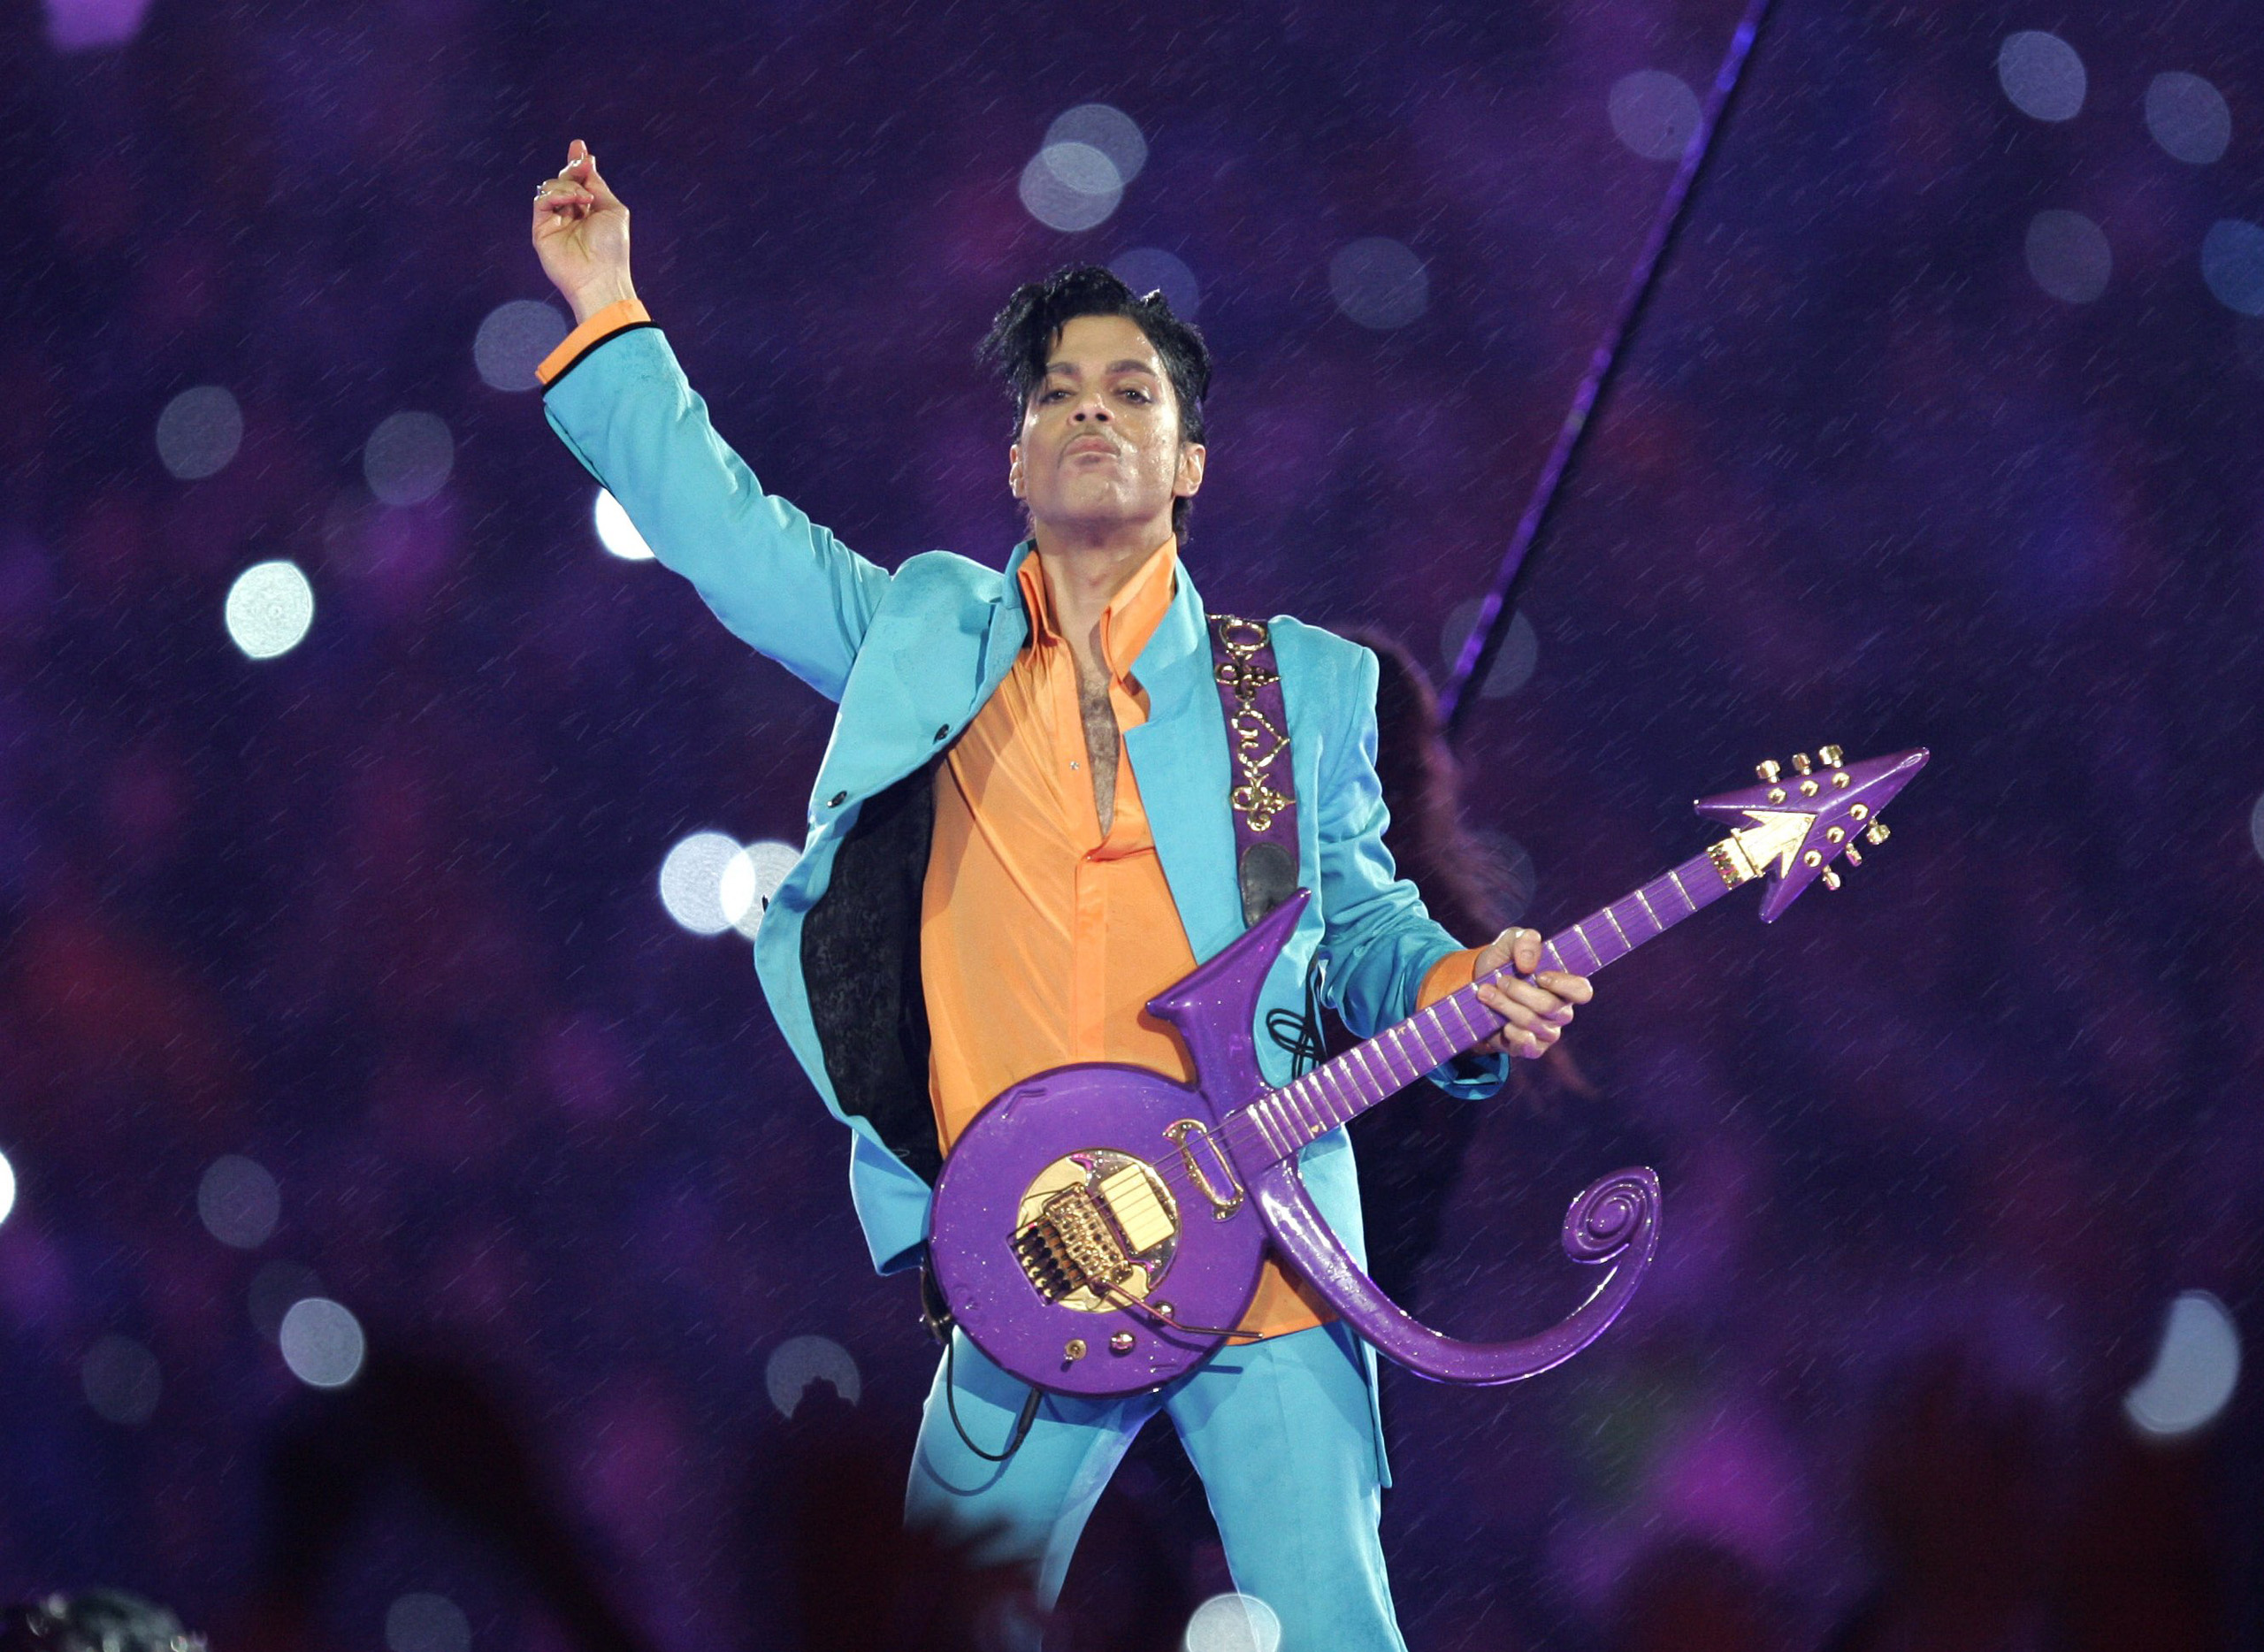 Prince performs during the halftime show at the Super Bowl XLI football game at Dolphin Stadium in Miami, Feb. 4, 2007.